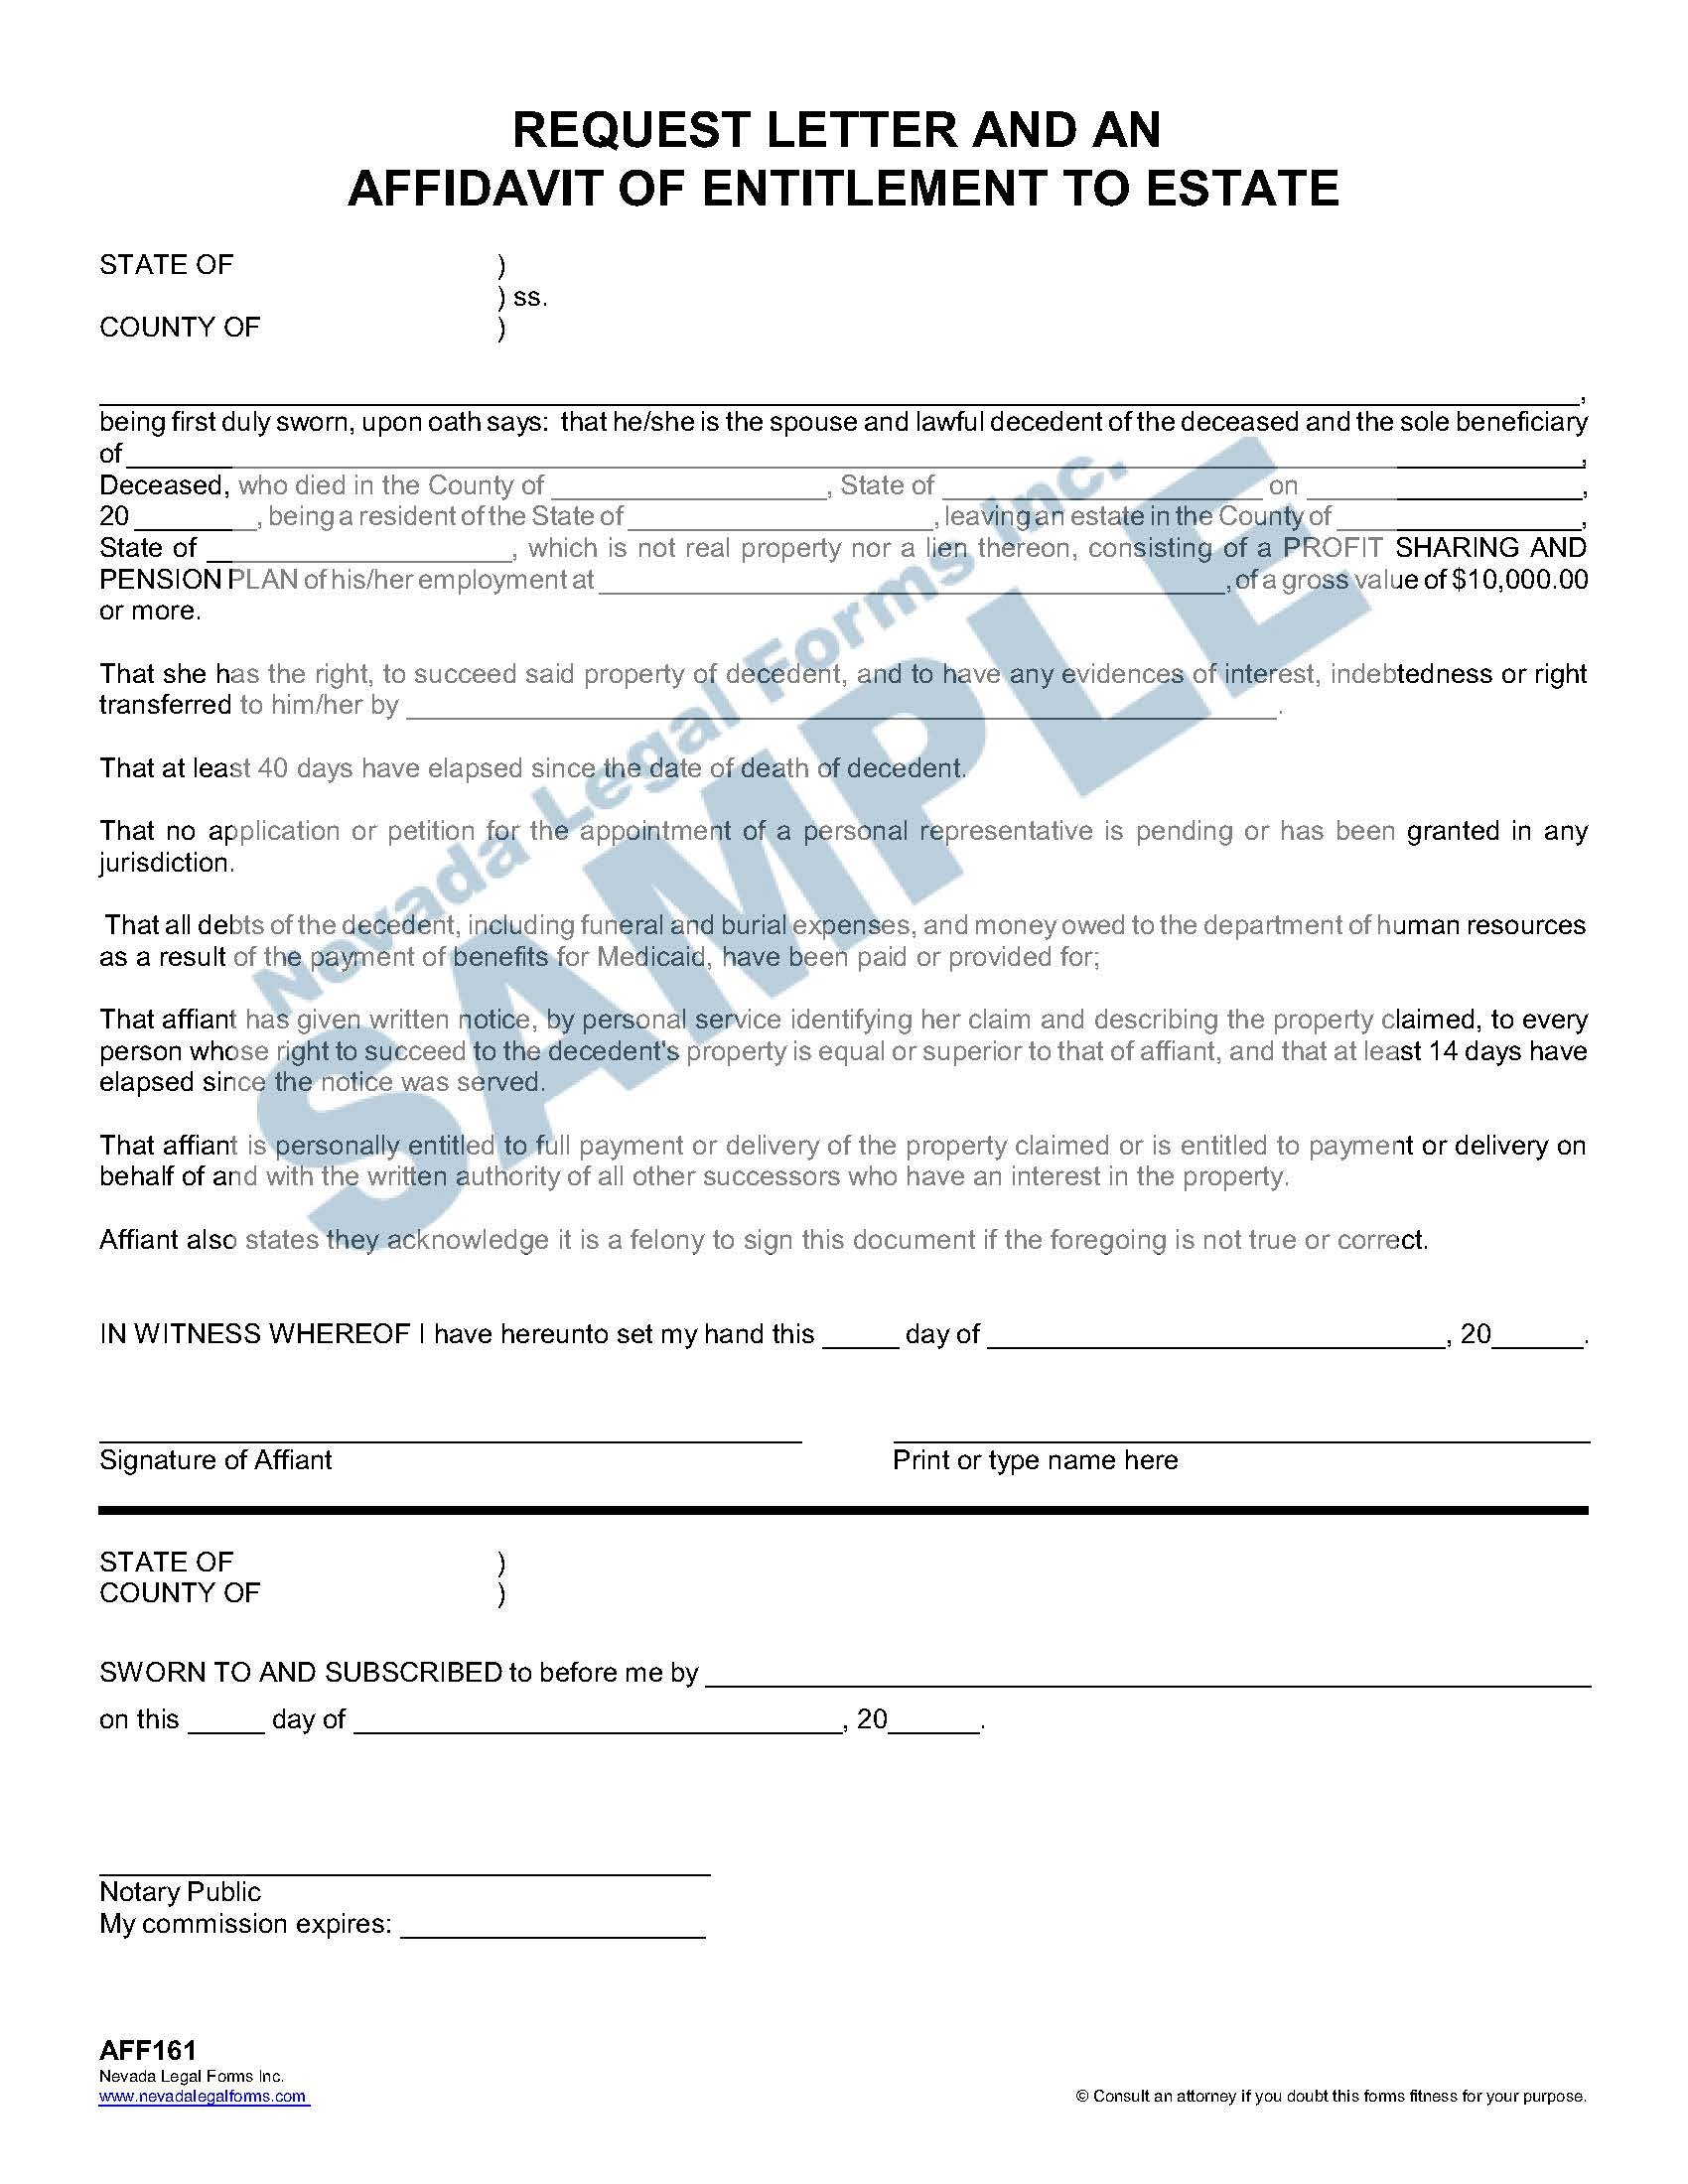 Request Letter And An Affidavit Of Entitlement To Estate